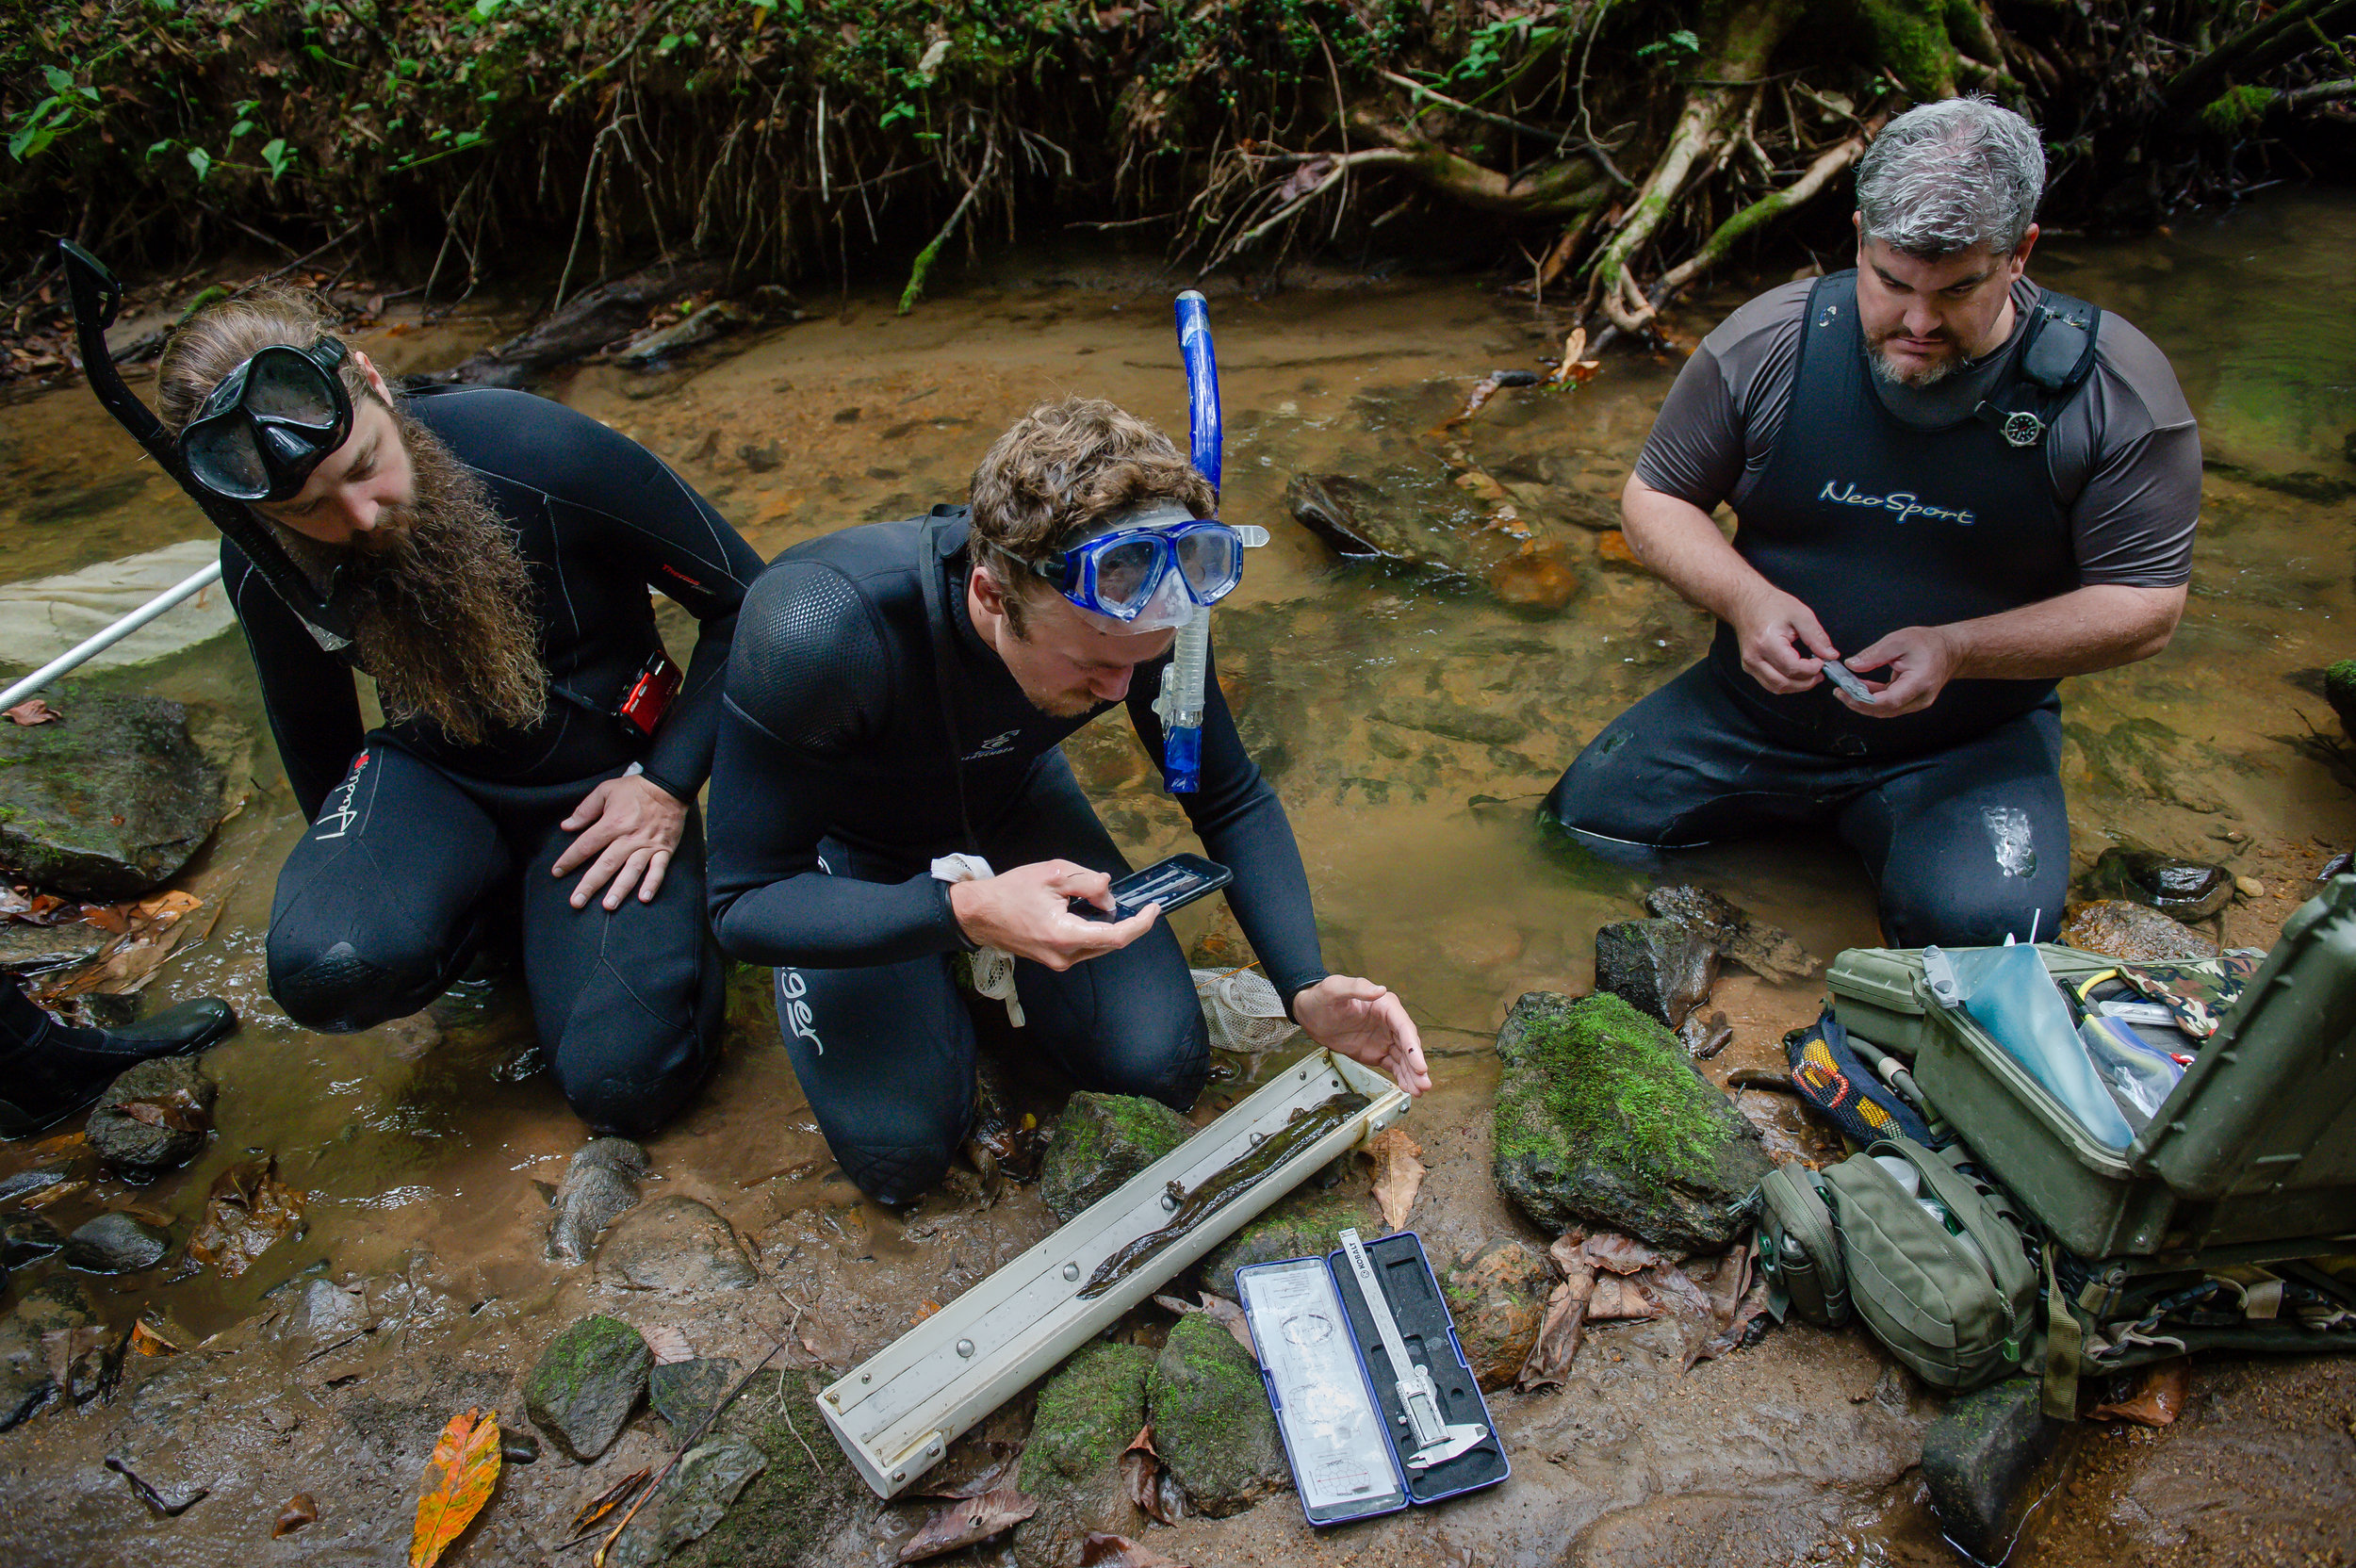 (From left) Georgia Department of Transportation ecologists (from left) Ryan Niccoli and Nathan Polley, and Georgia Department of Natural Resources wildlife biologist Thomas Floyd, measure and tag an Eastern hellbender during a scheduled survey of Eastern hellbenders in the Chattahoochee National Forest in North Georgia Friday, Aug. 31, 2018.